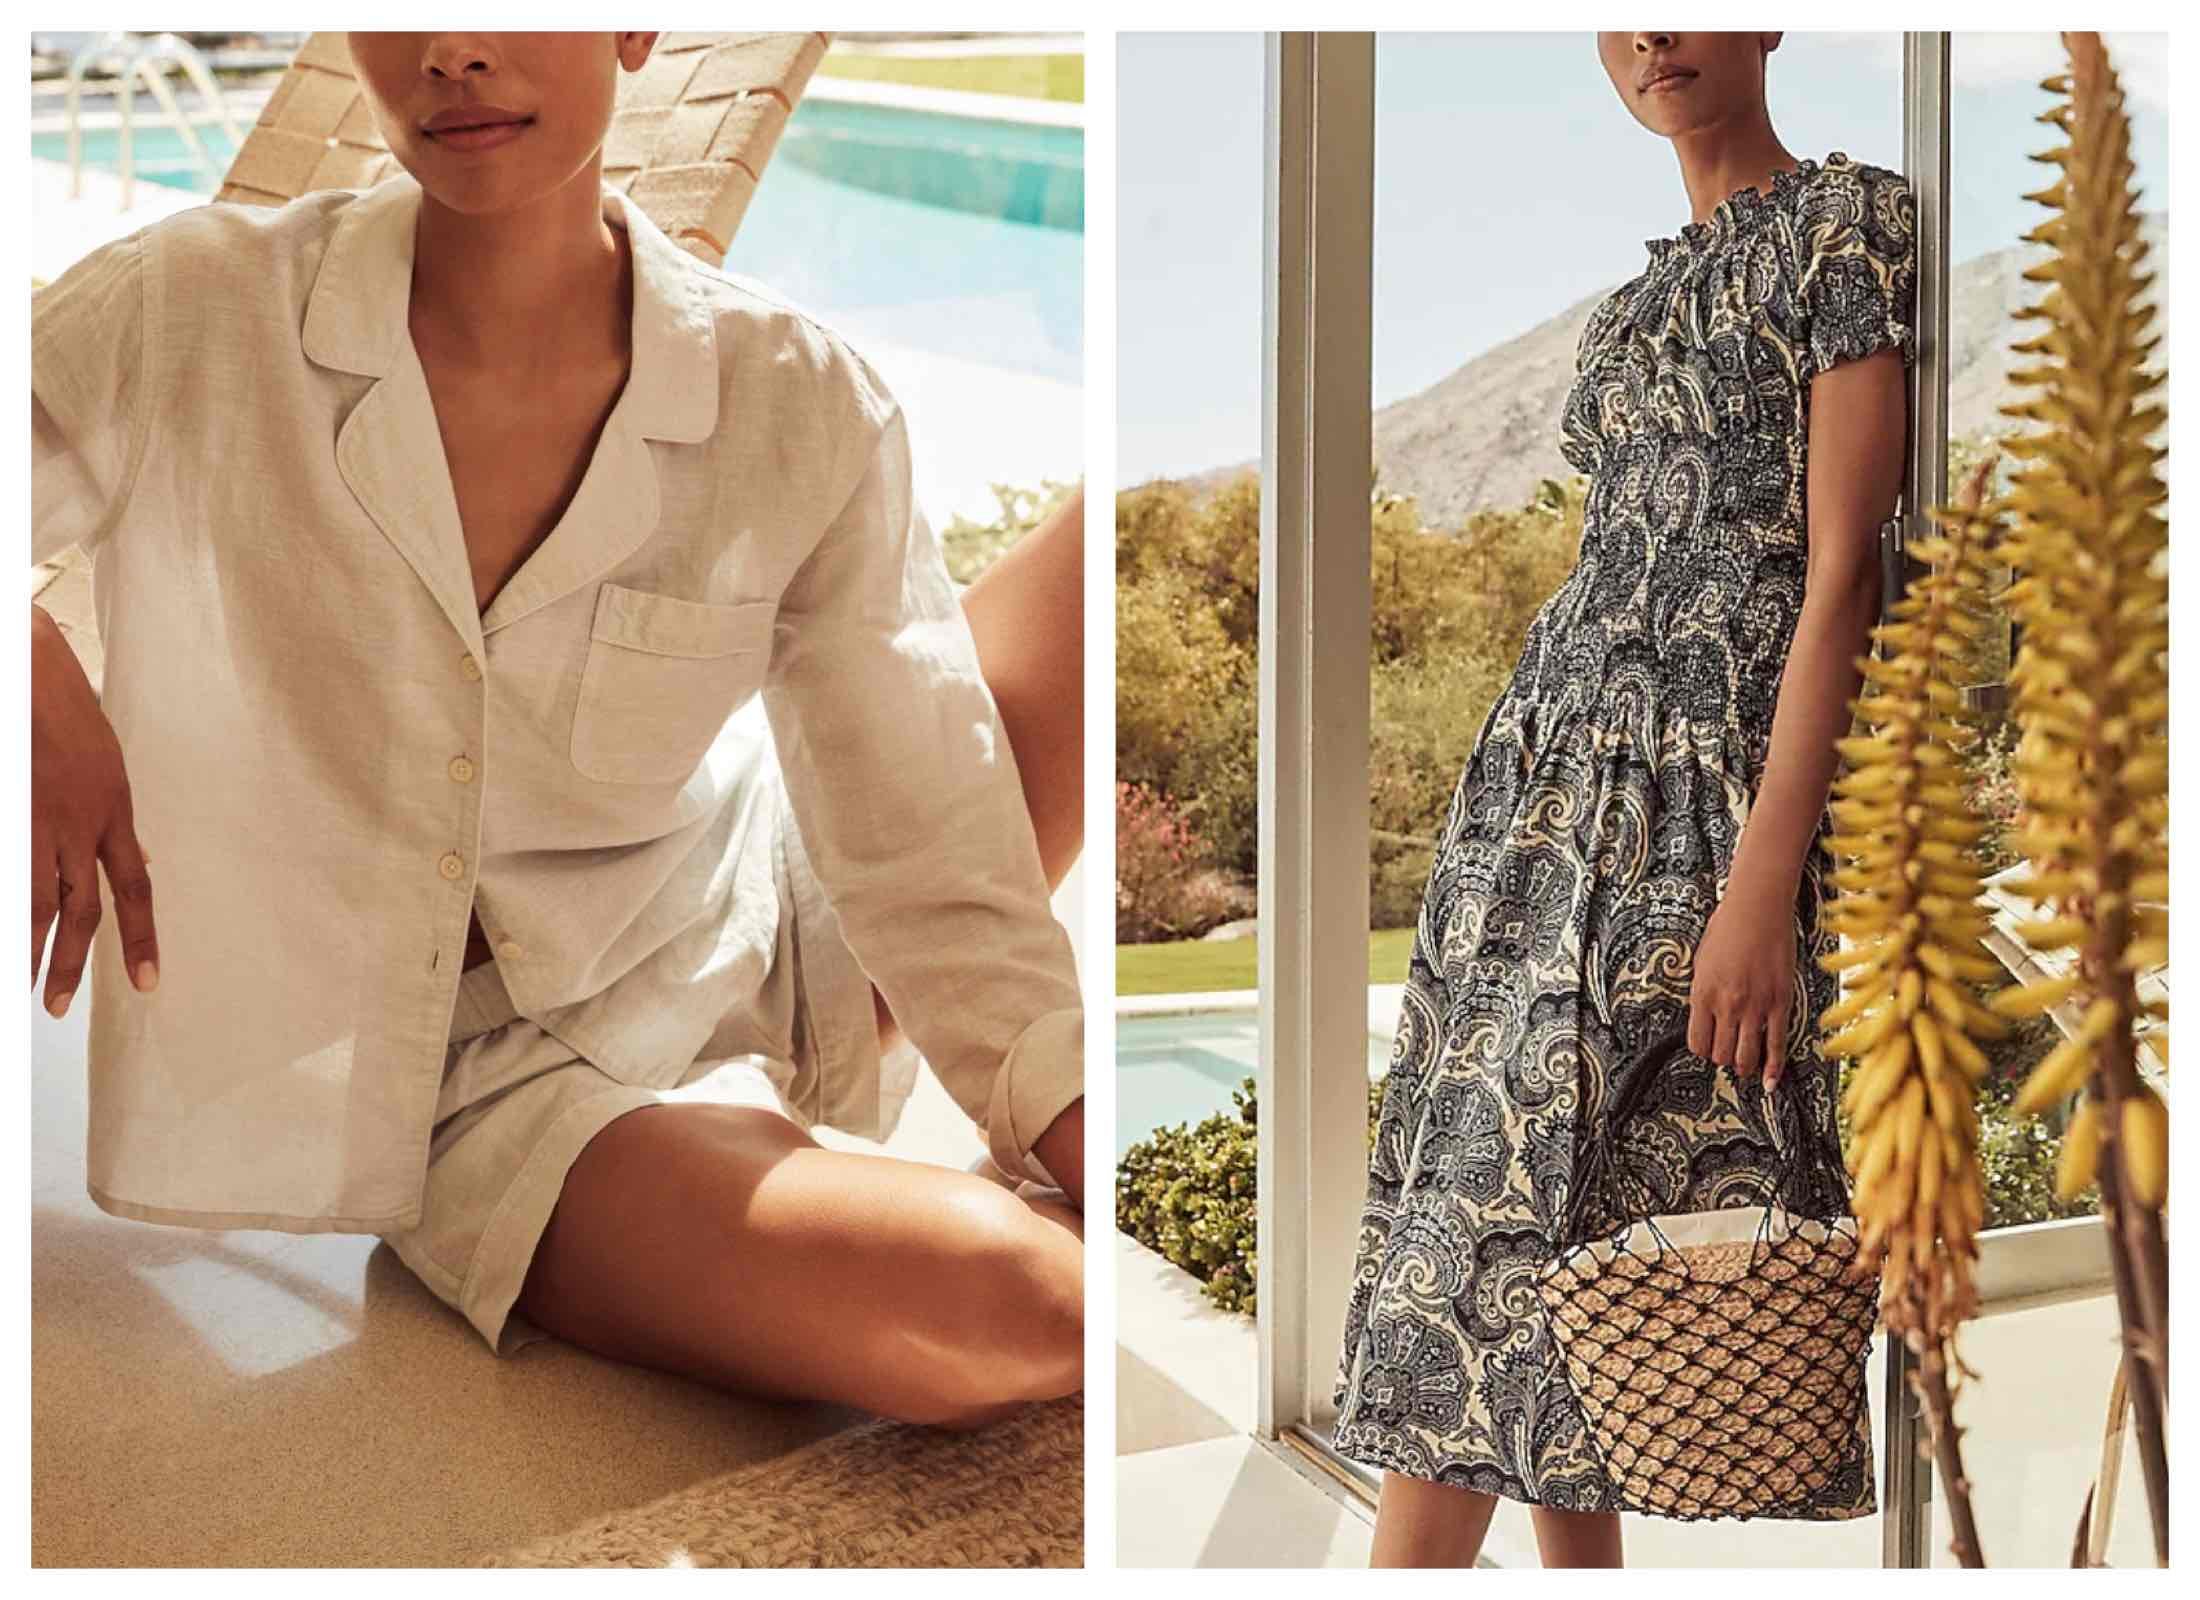 This Memorial Day weekend, we're doing your online shopping for you. For our J.Crew's Memorial Day deals, think: cute womens swimsuits, summery kids' clothes & cashmere on sale? YASSS.